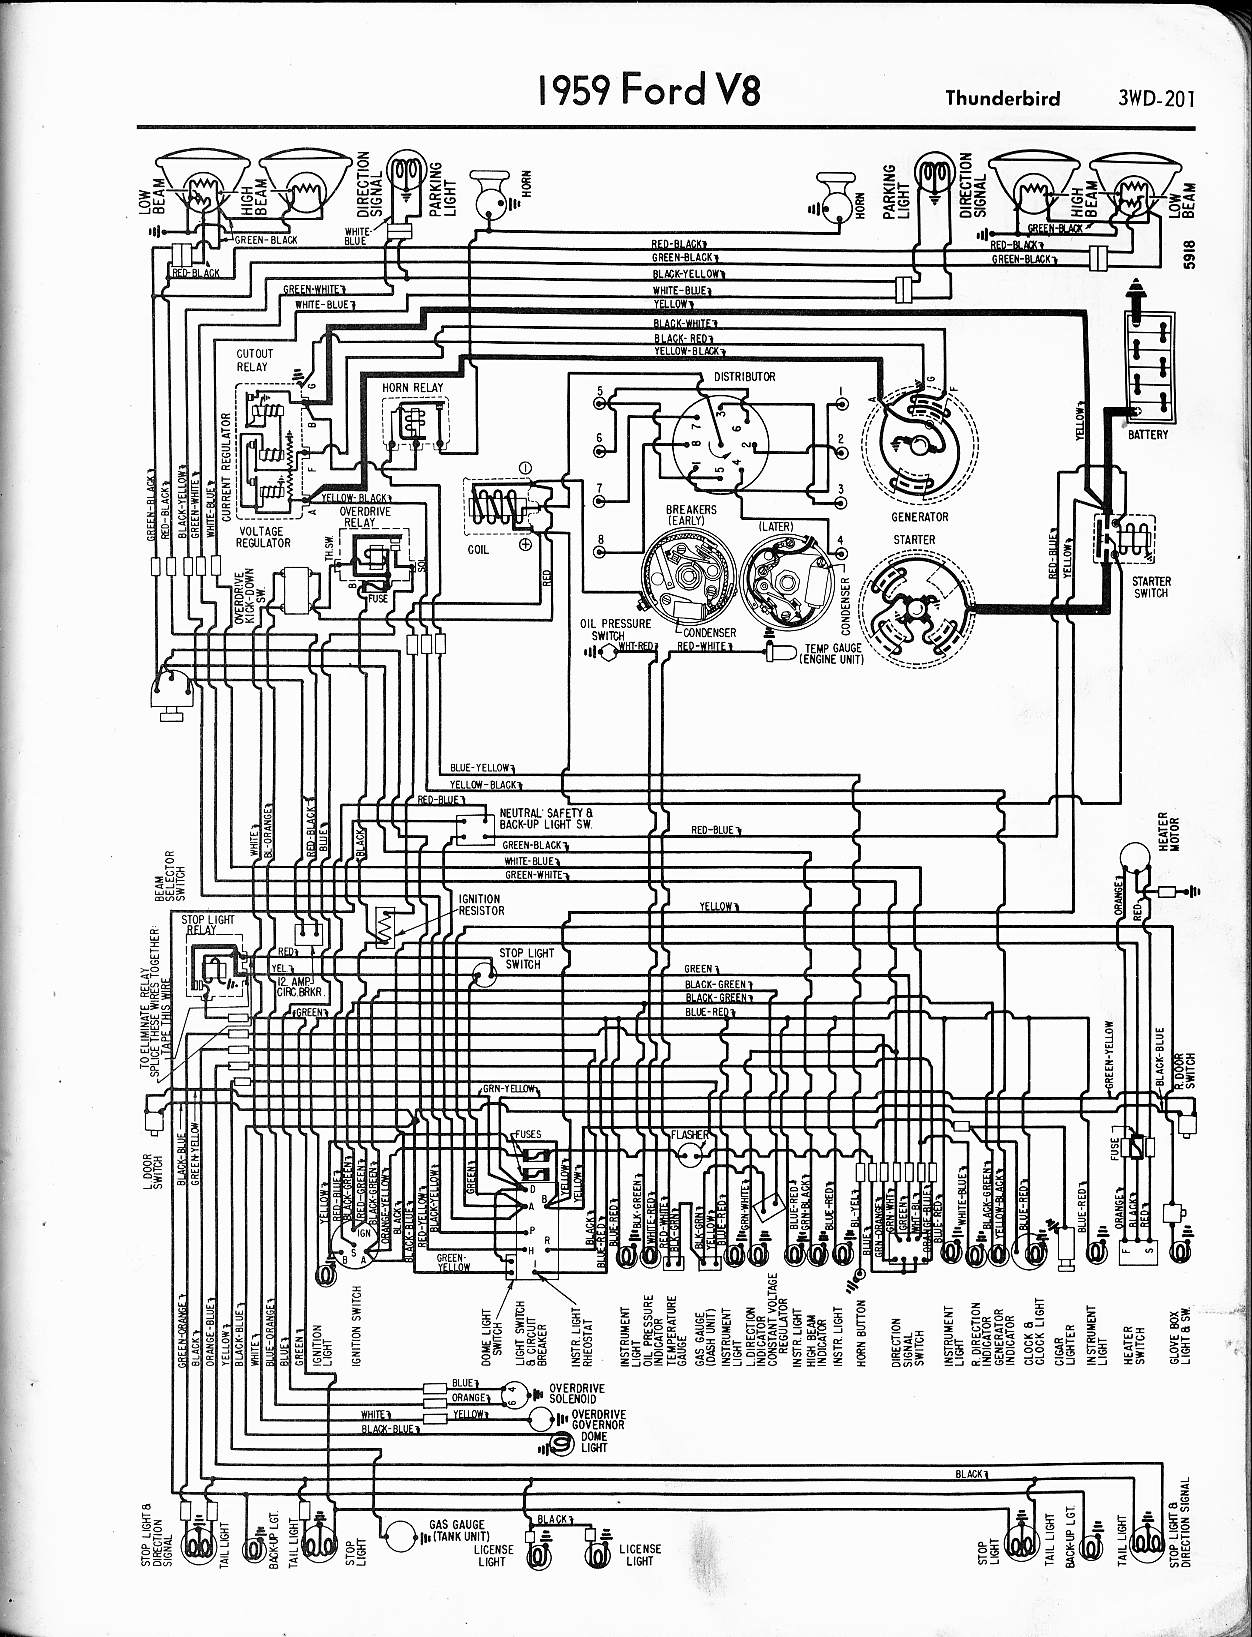 1972 Ford Mustang Fuse Box Diagram Wire Center 1993 On Images Gallery